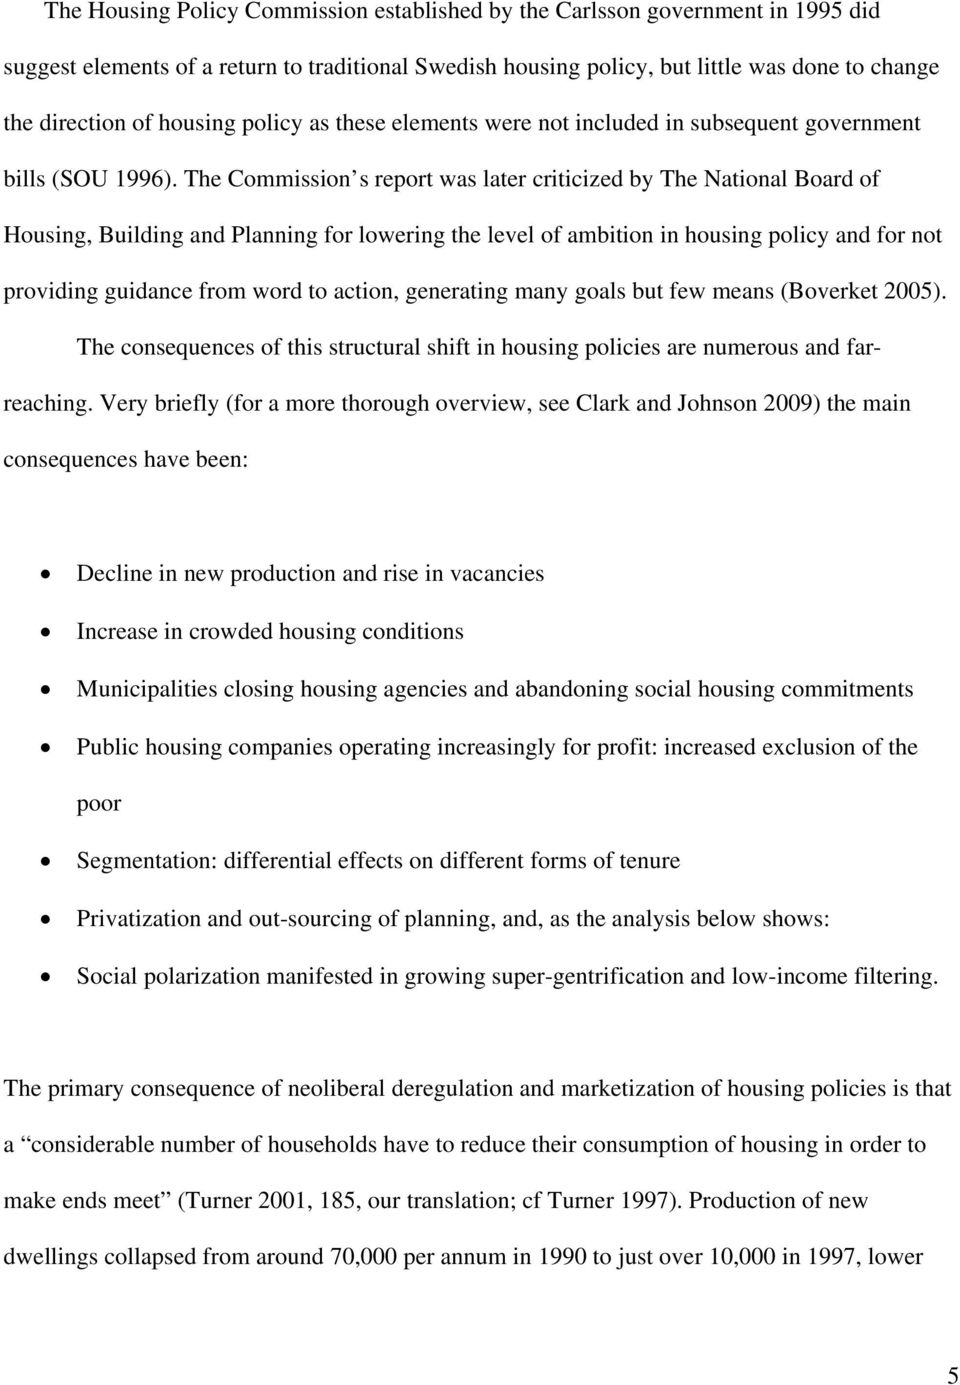 The Commission s report was later criticized by The National Board of Housing, Building and Planning for lowering the level of ambition in housing policy and for not providing guidance from word to